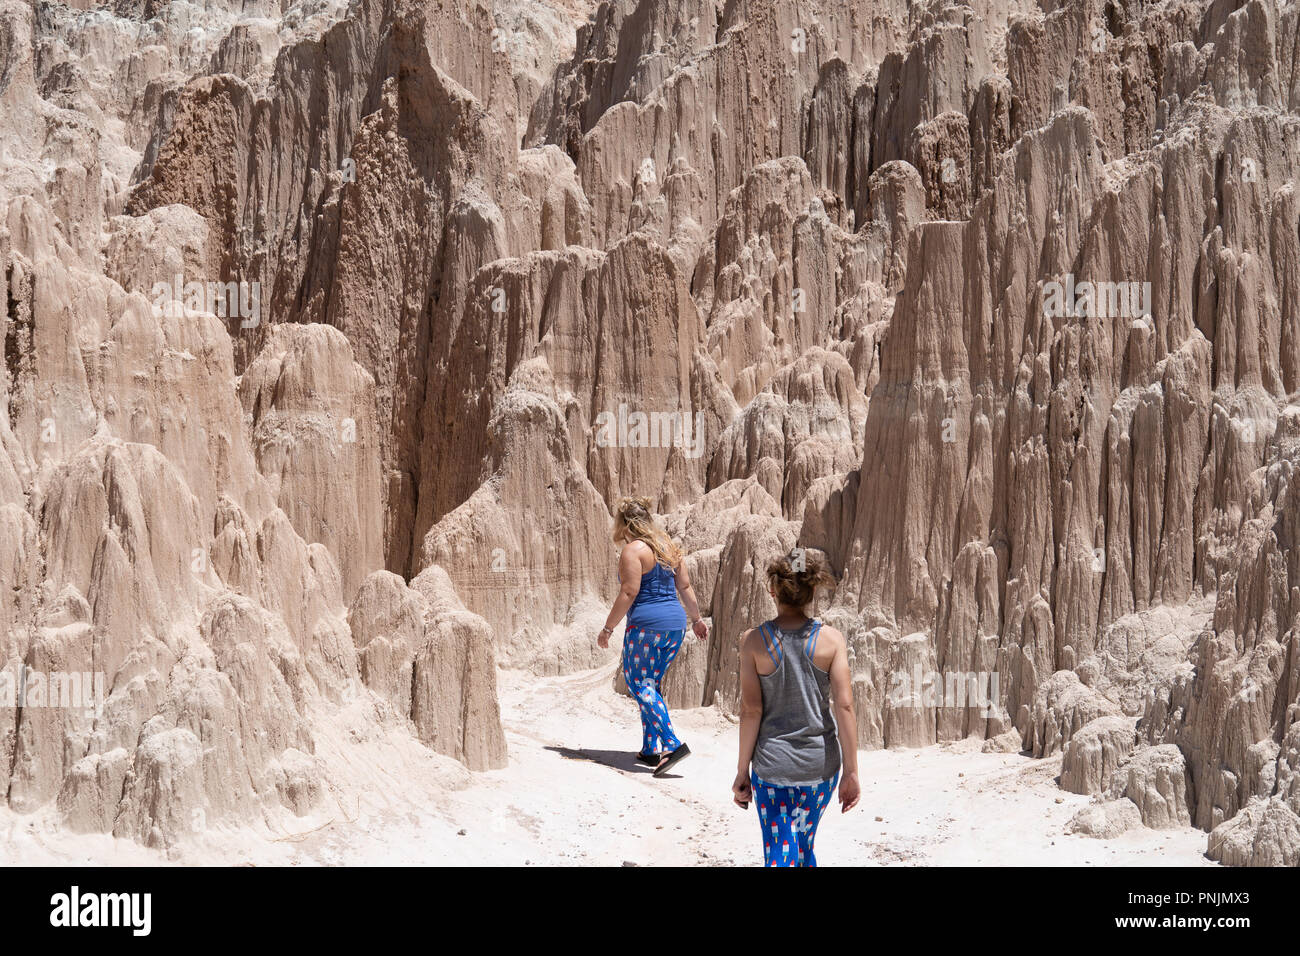 Two female hikers start their hike in Cathedral Gorge State Park. Concept for adventure, female friendship - Stock Image